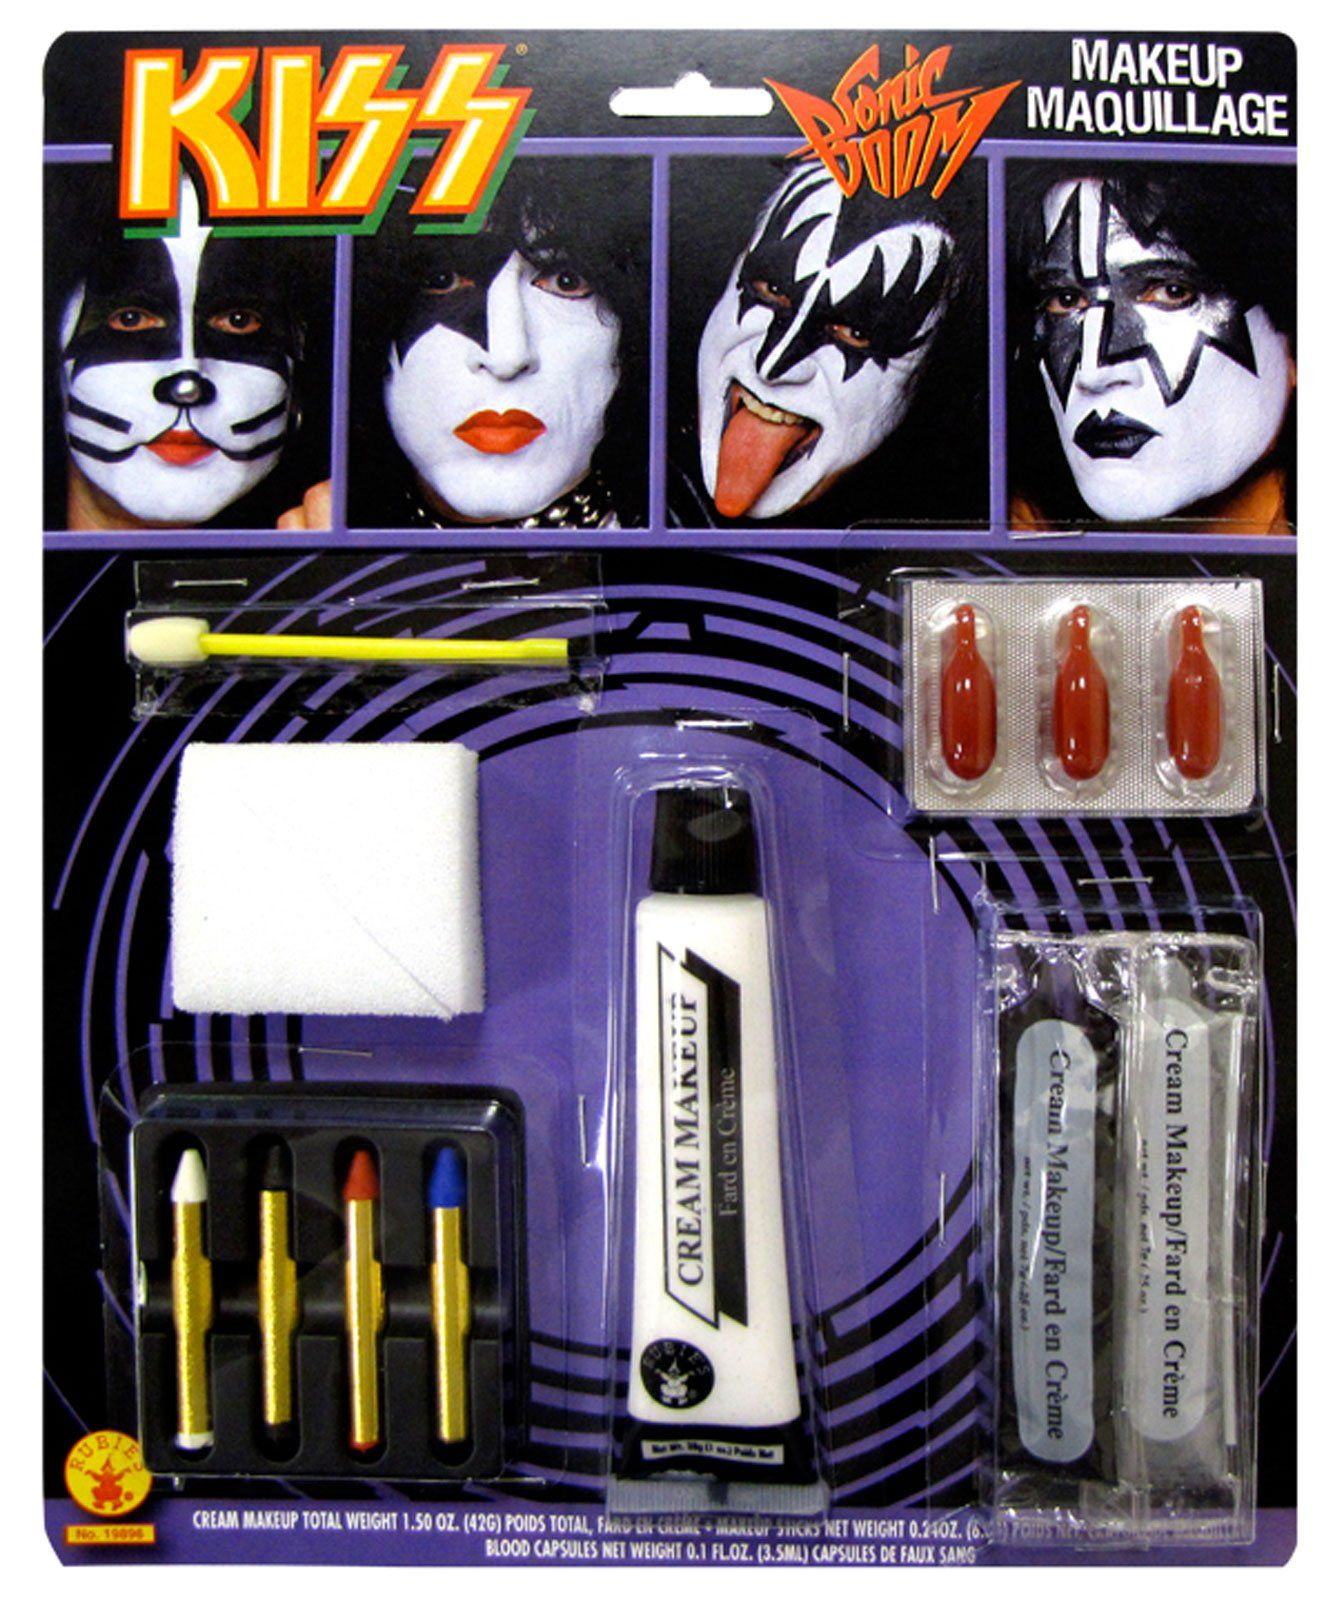 Kiss Band Makeup: With This One Amazing KISS Makeup Kit You Can Create The